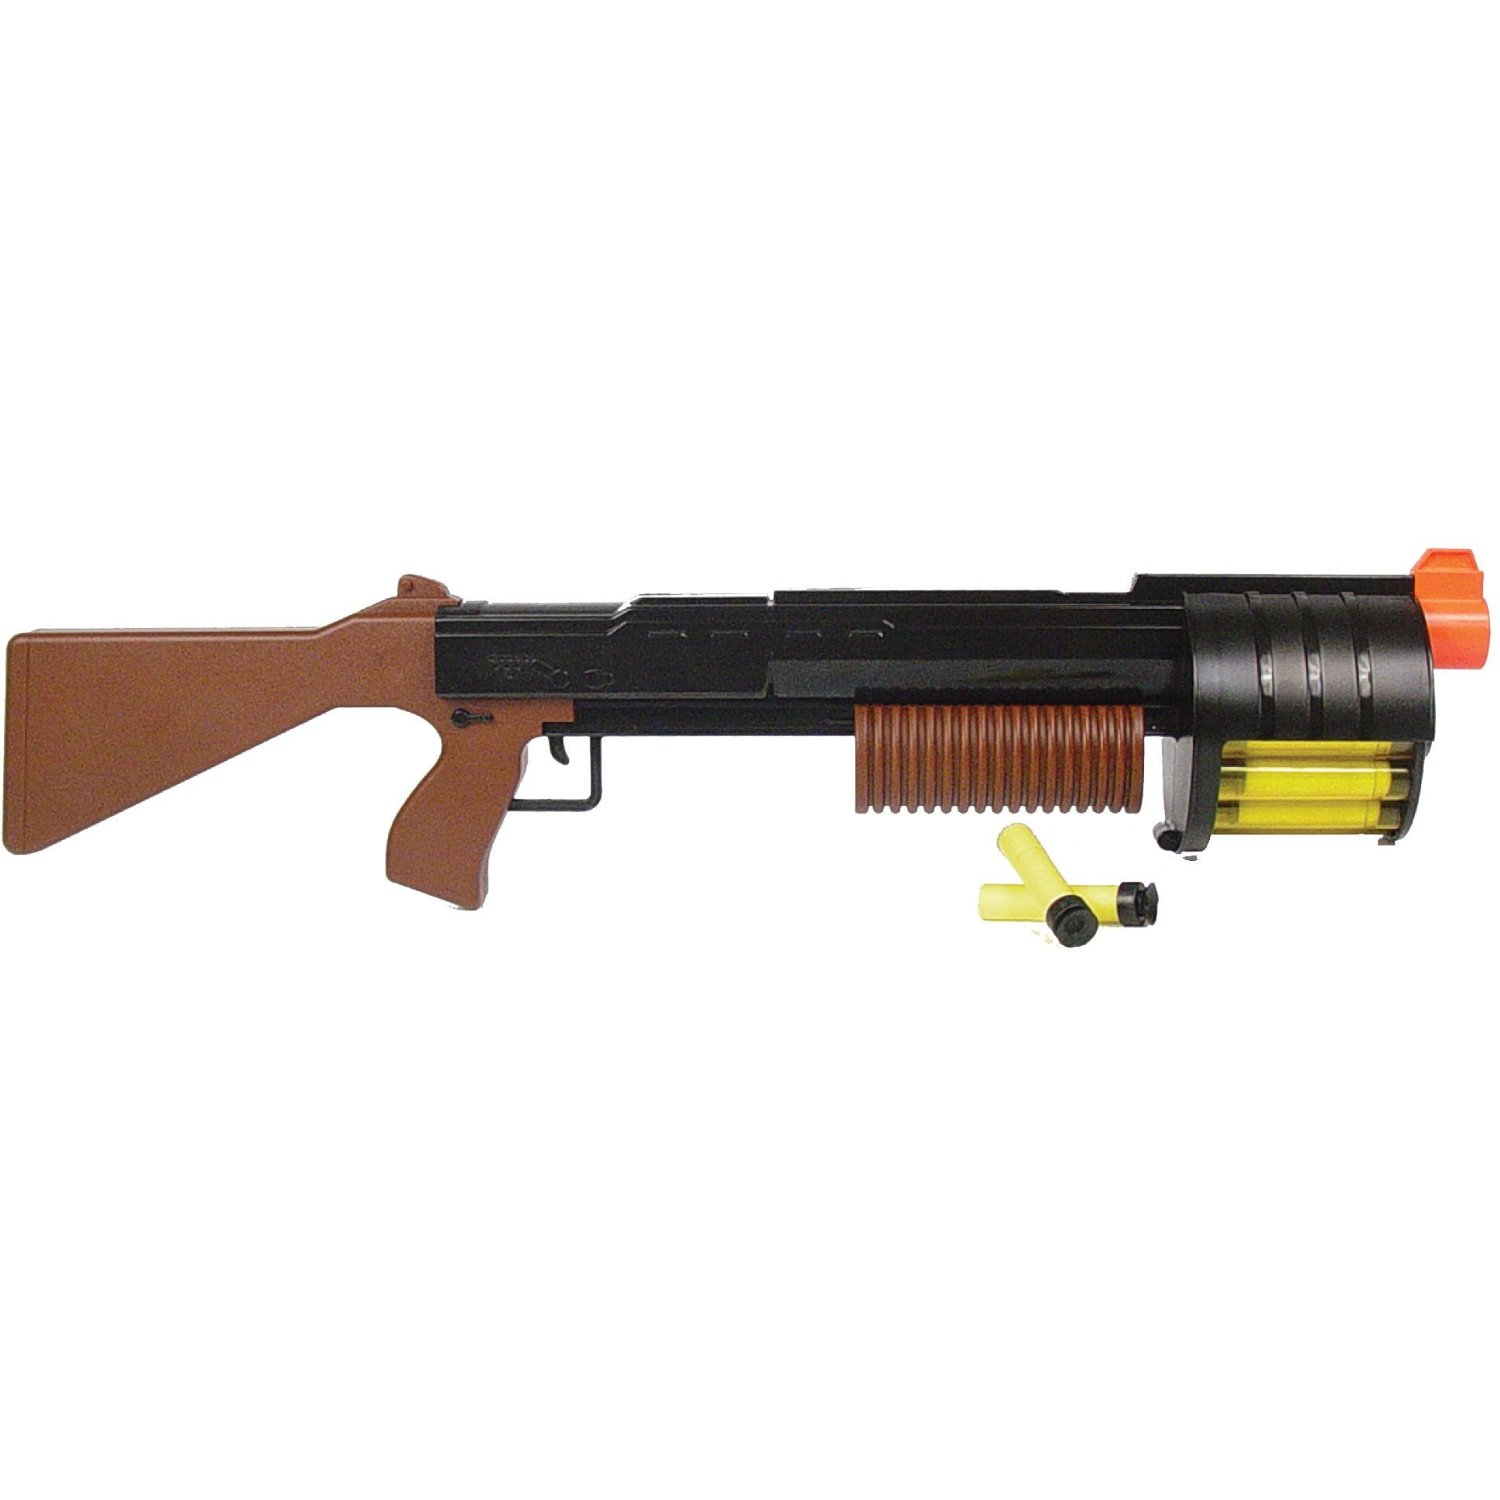 Cool Toy Shotguns : Nerf toys and cool stuff outdoor sportsman rapid fire